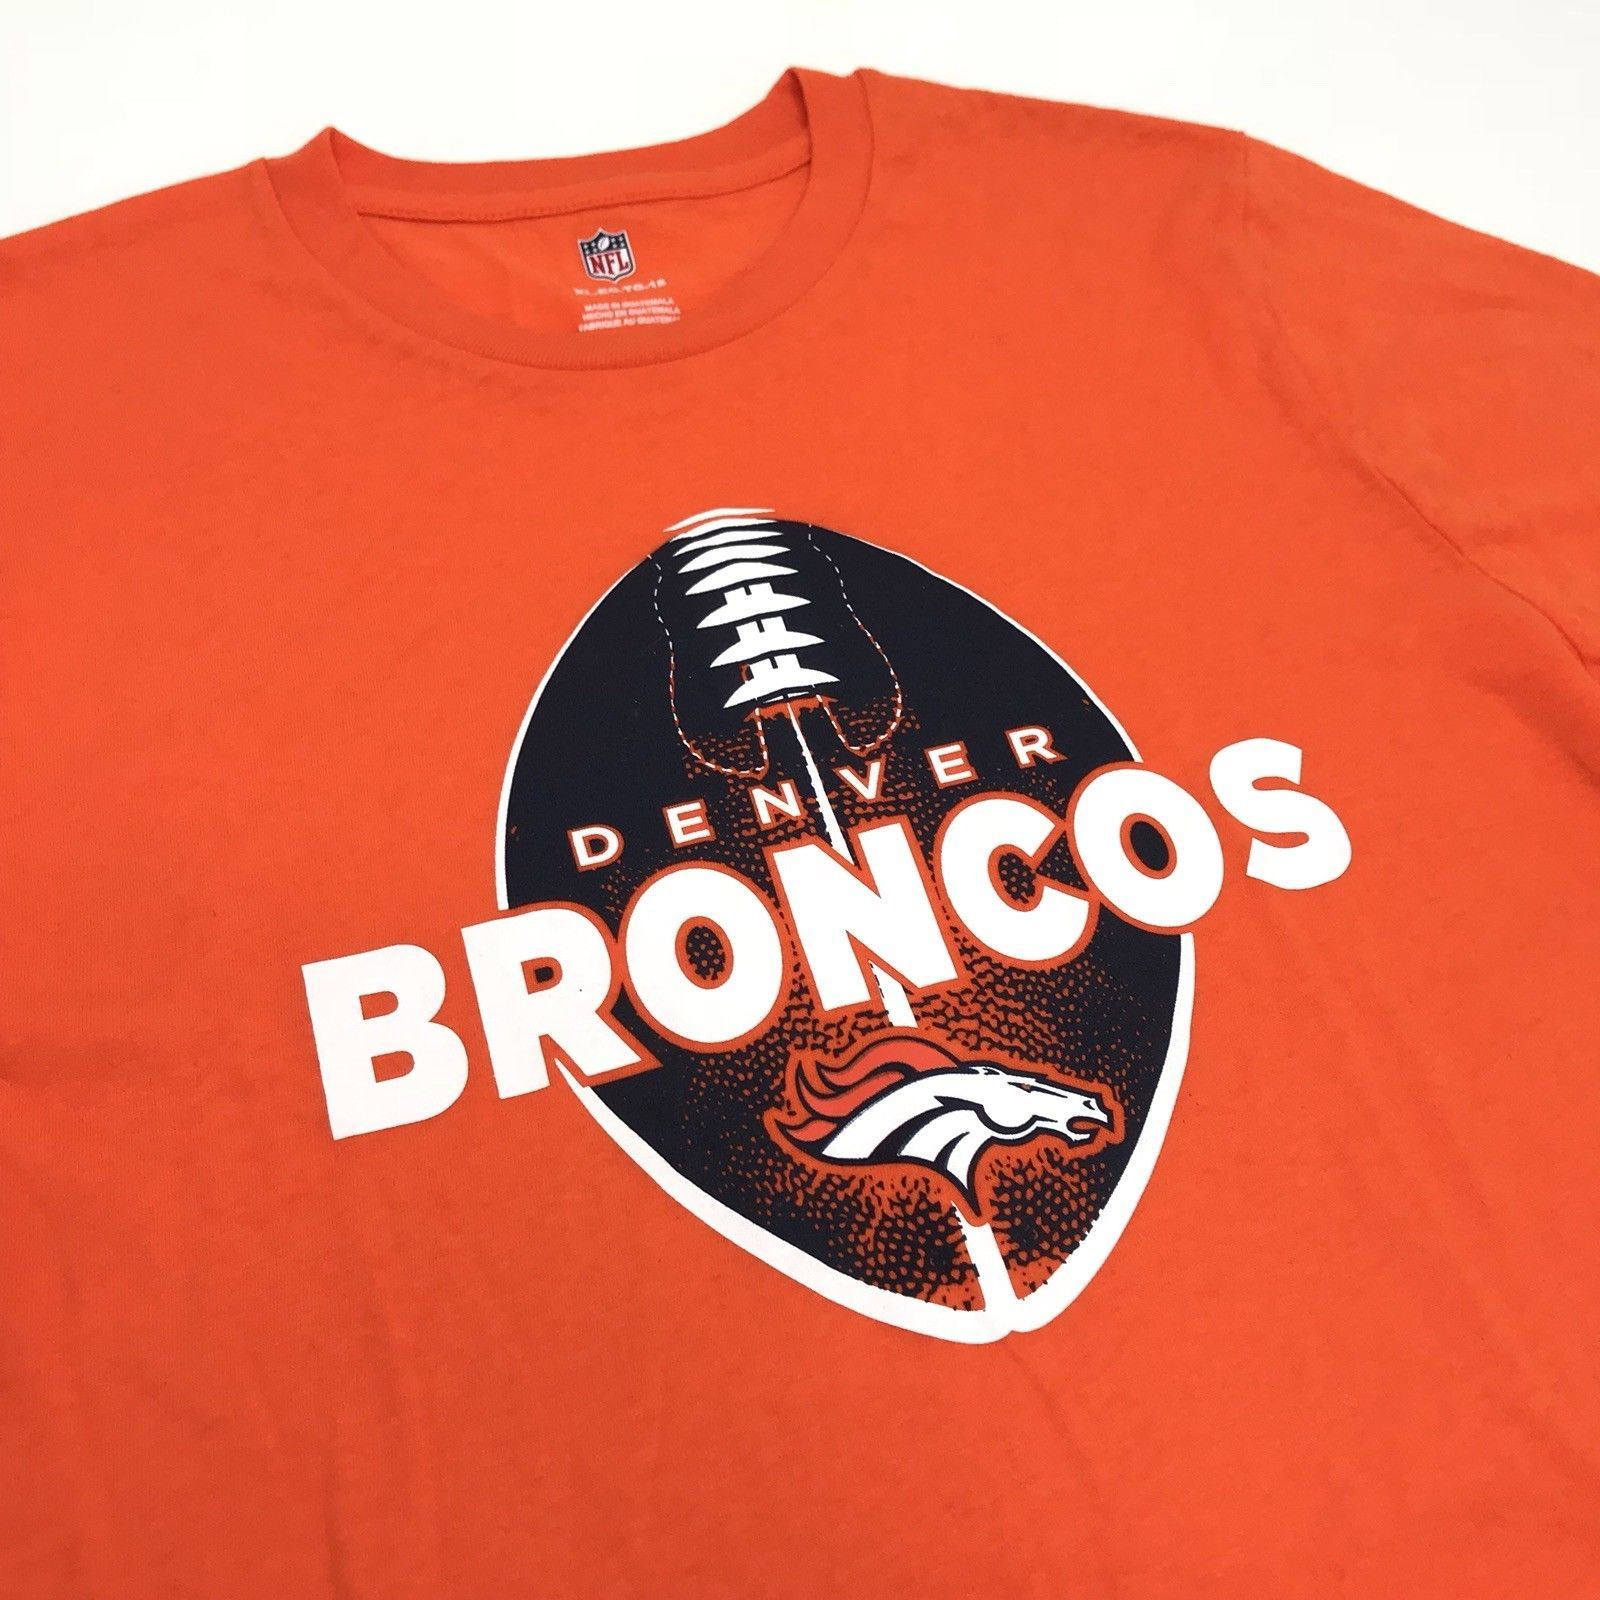 c47e1cccc29 NFL Denver Broncos Football Shirt NEW Men XL Orange Short Sleeve Tee